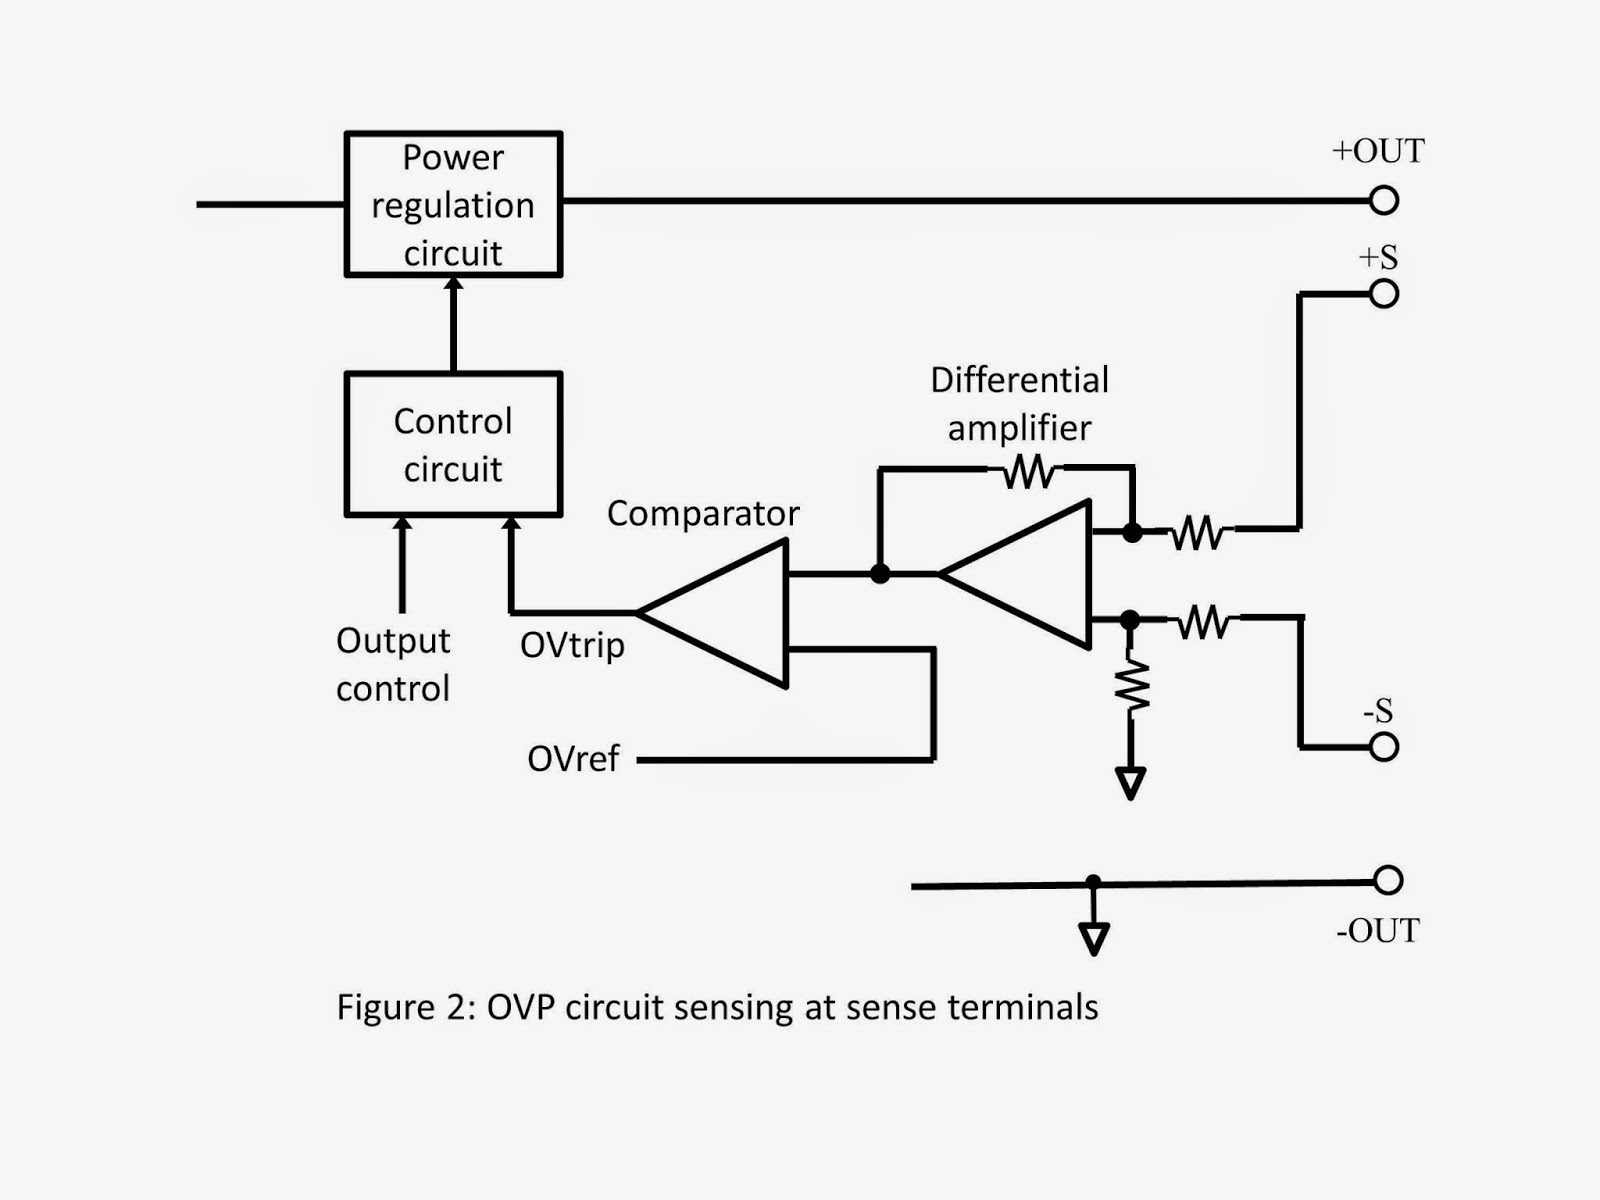 watt s up  some other ovp designs use a calibrated analog to digital converter adc on either the output terminal voltage or the sense terminal voltage and compare